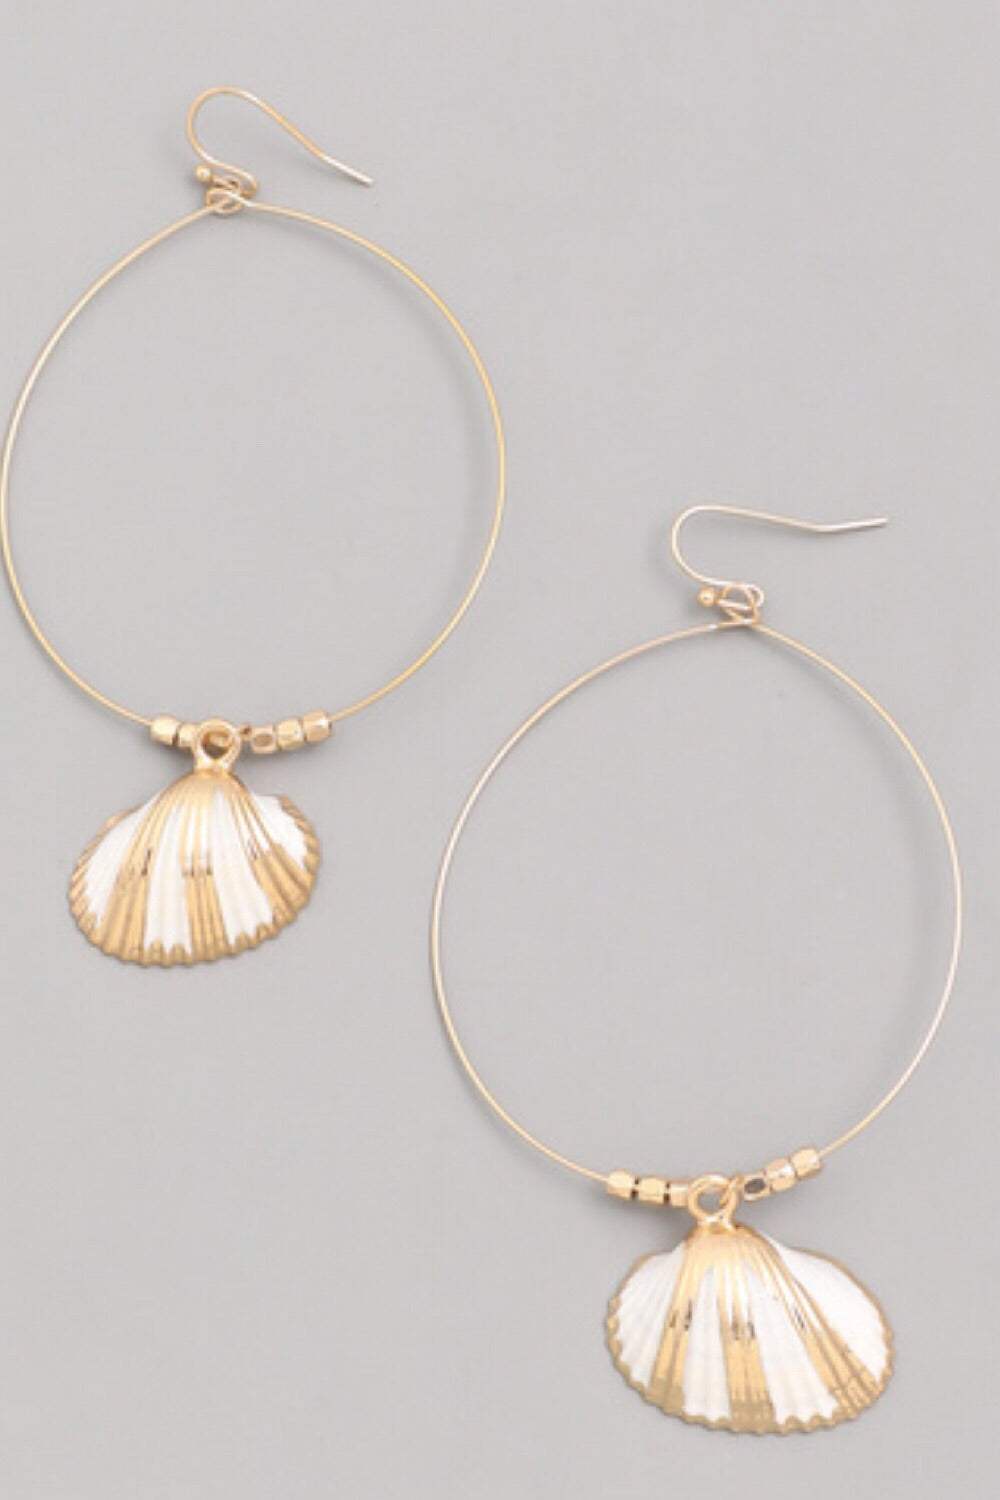 Villa Nova Earrings